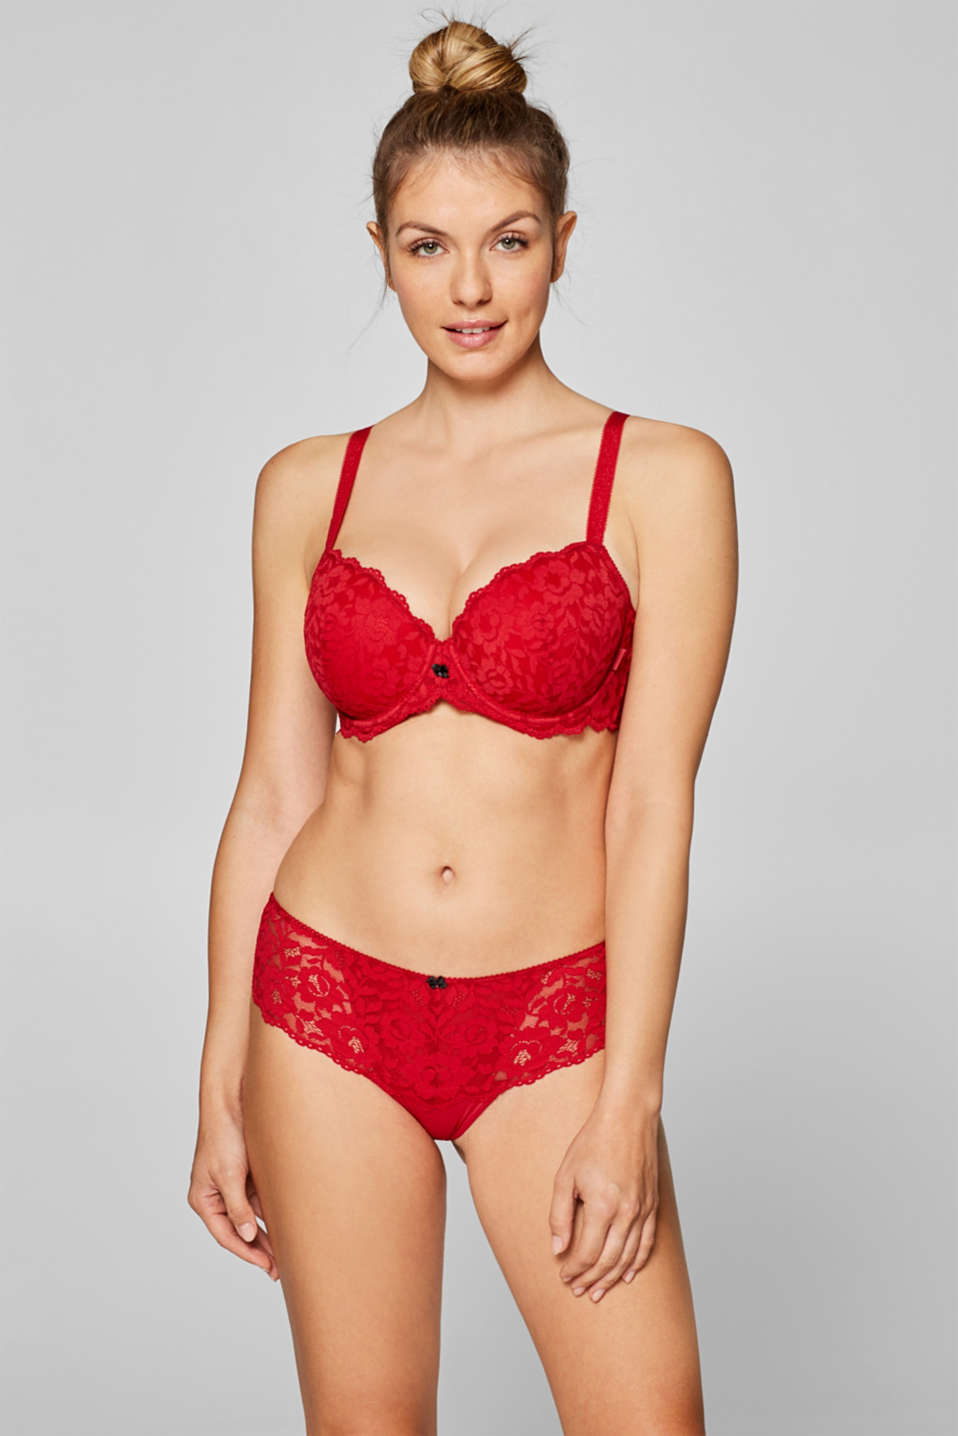 Esprit - Padded, underwire bra for large cup sizes